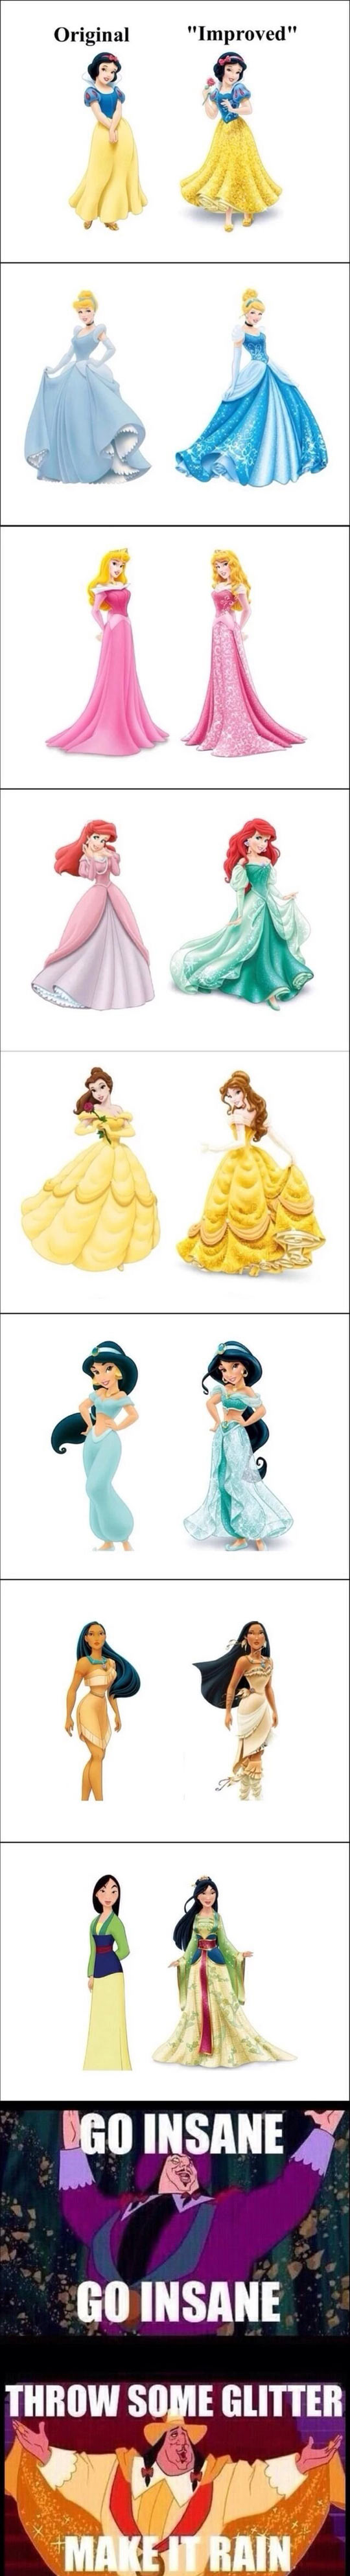 funny-improved-princesses-White-Snow-Belle